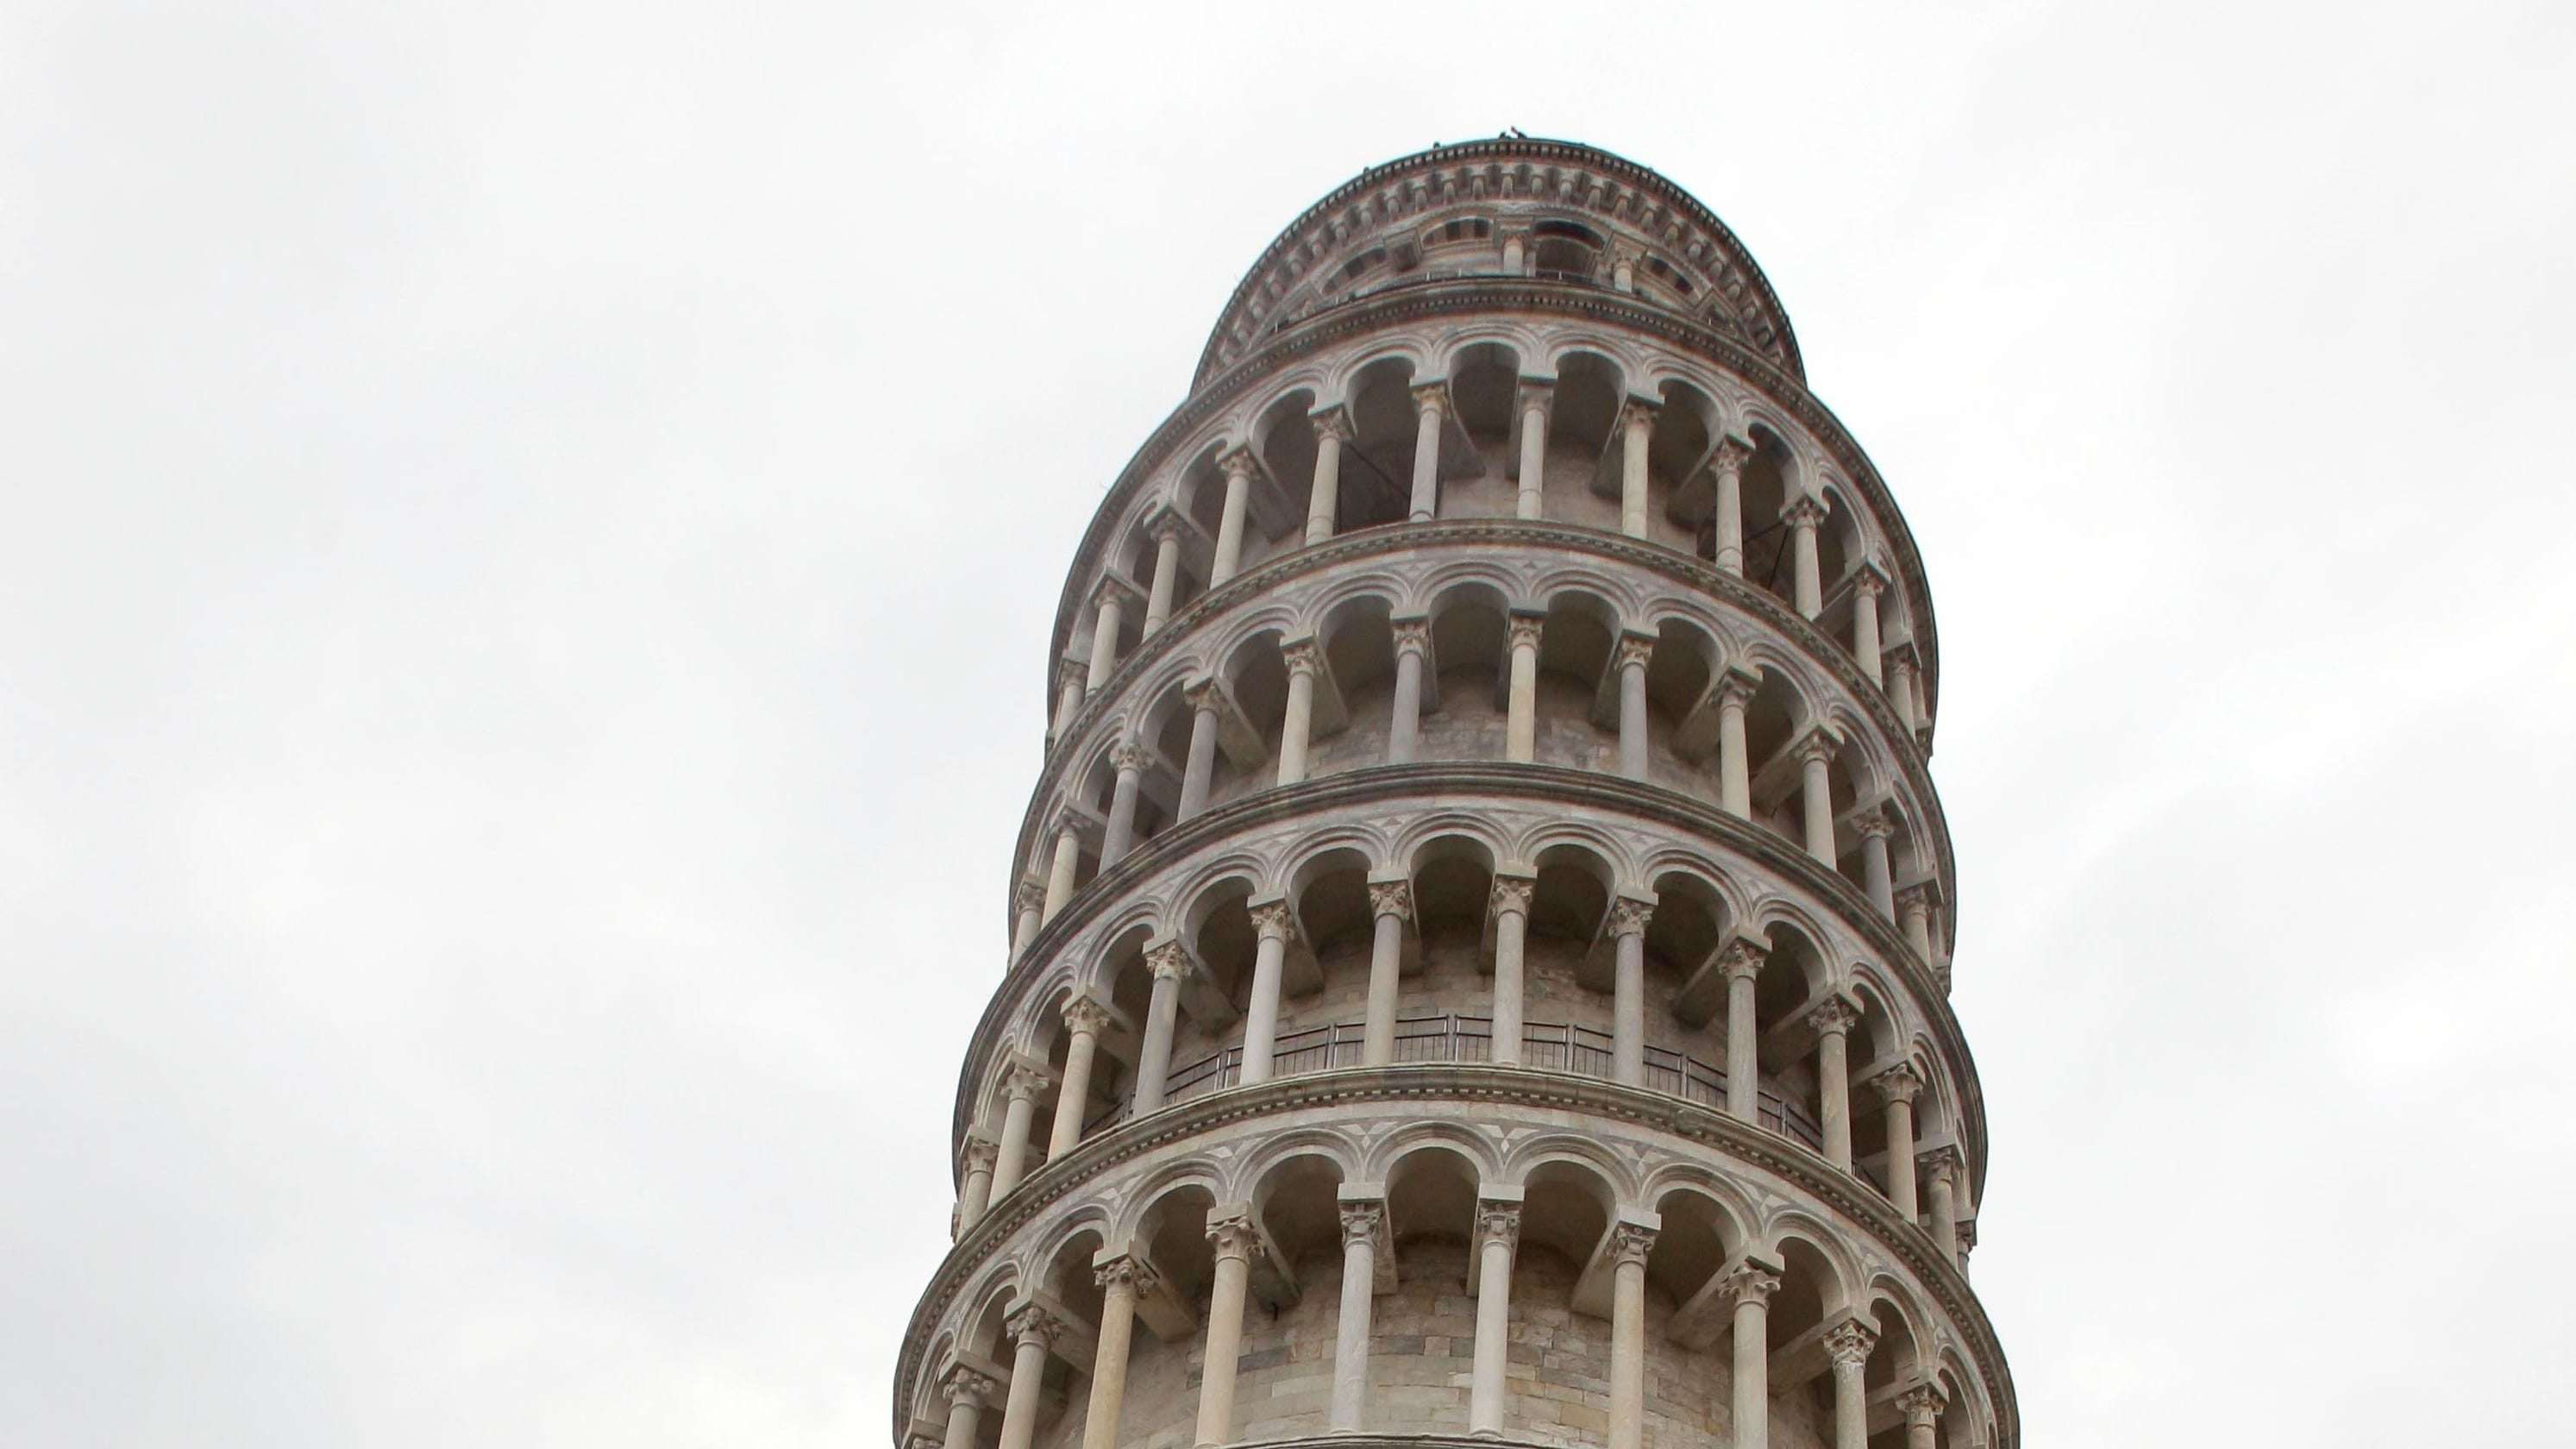 Leaning Tower Of Pisa Isn't Leaning So Much Anymore